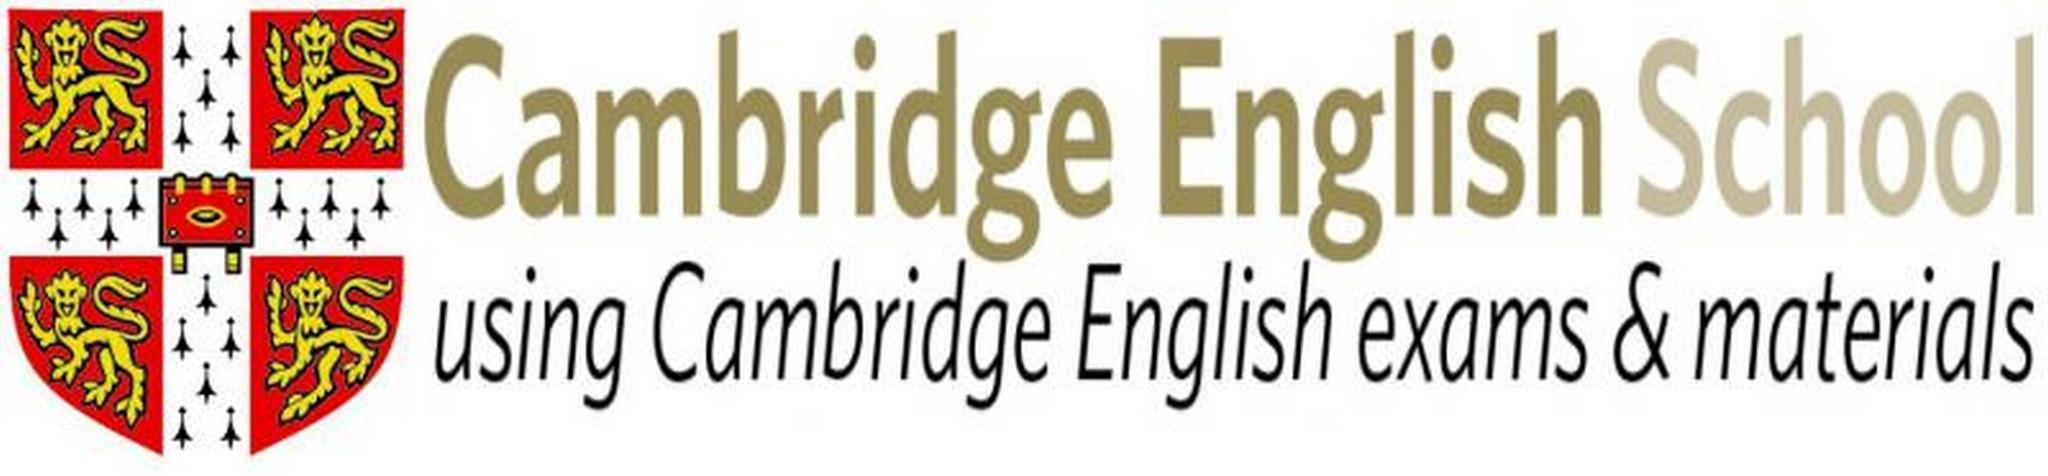 14 05 12 logo cambridge english school